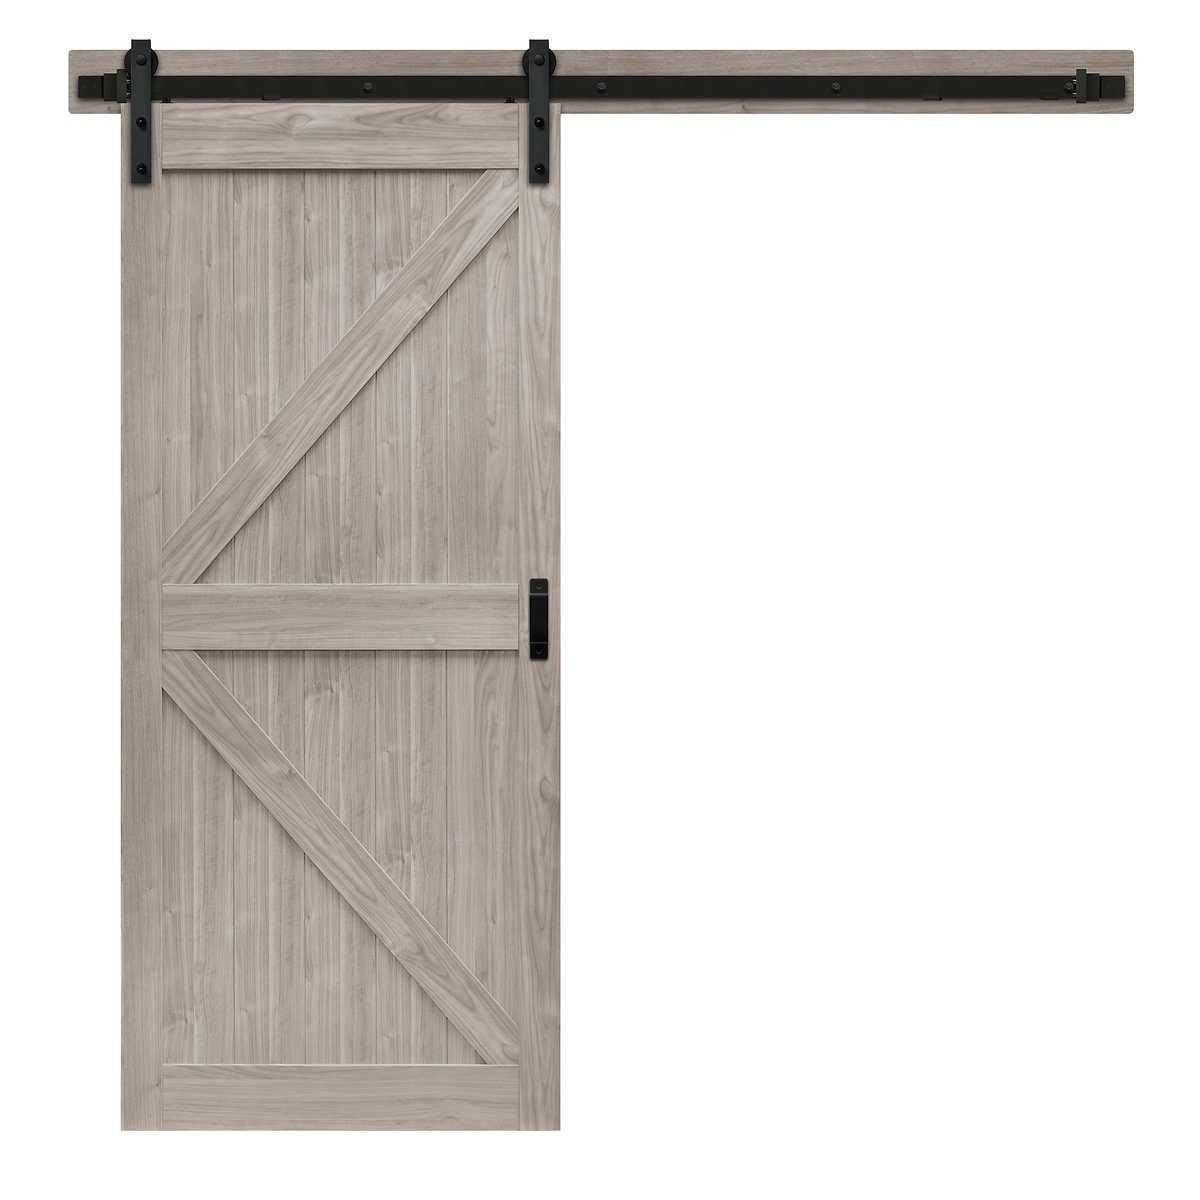 "Sliding Barn Door for Bedroom Fresh Renin 36"" K Design Barn Door with Hardware Kit & Easy Glide soft Close"